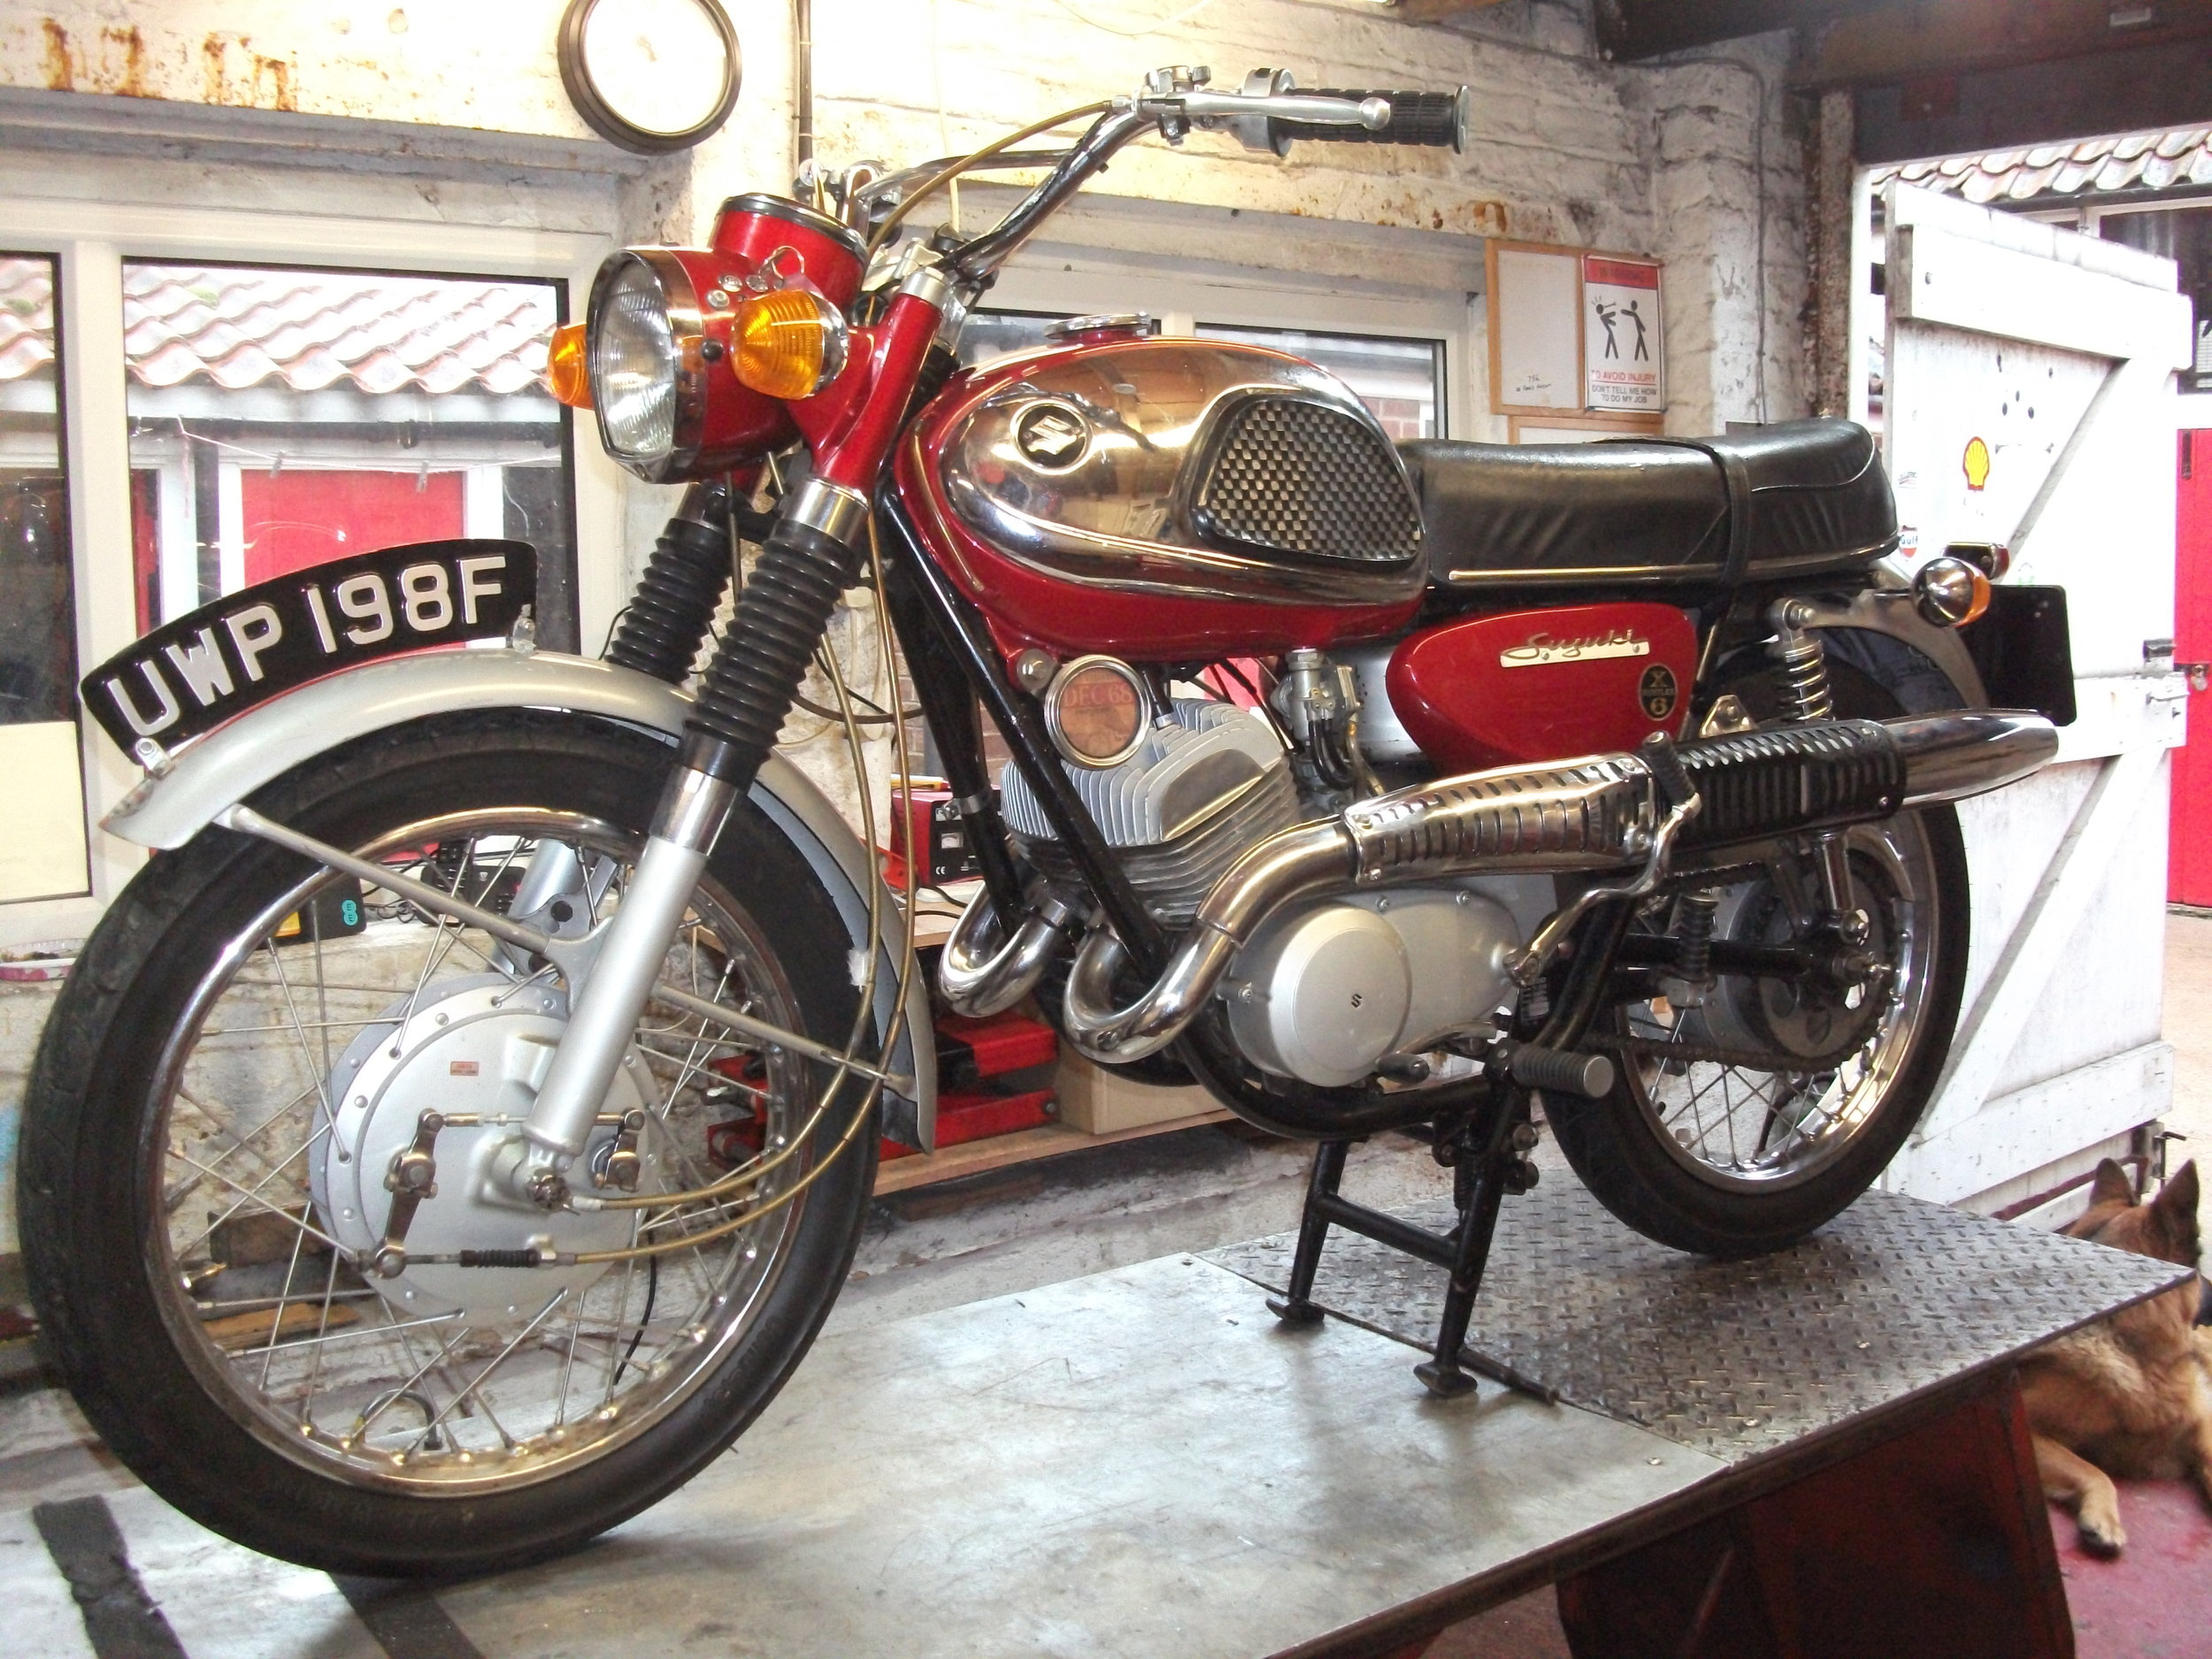 NOW SOLD ...1968 Suzuki TC 250cc 2stroke , 50 year old, historic vehicle, MOT and TAX exempt, very rare bike, ride as is or restore.